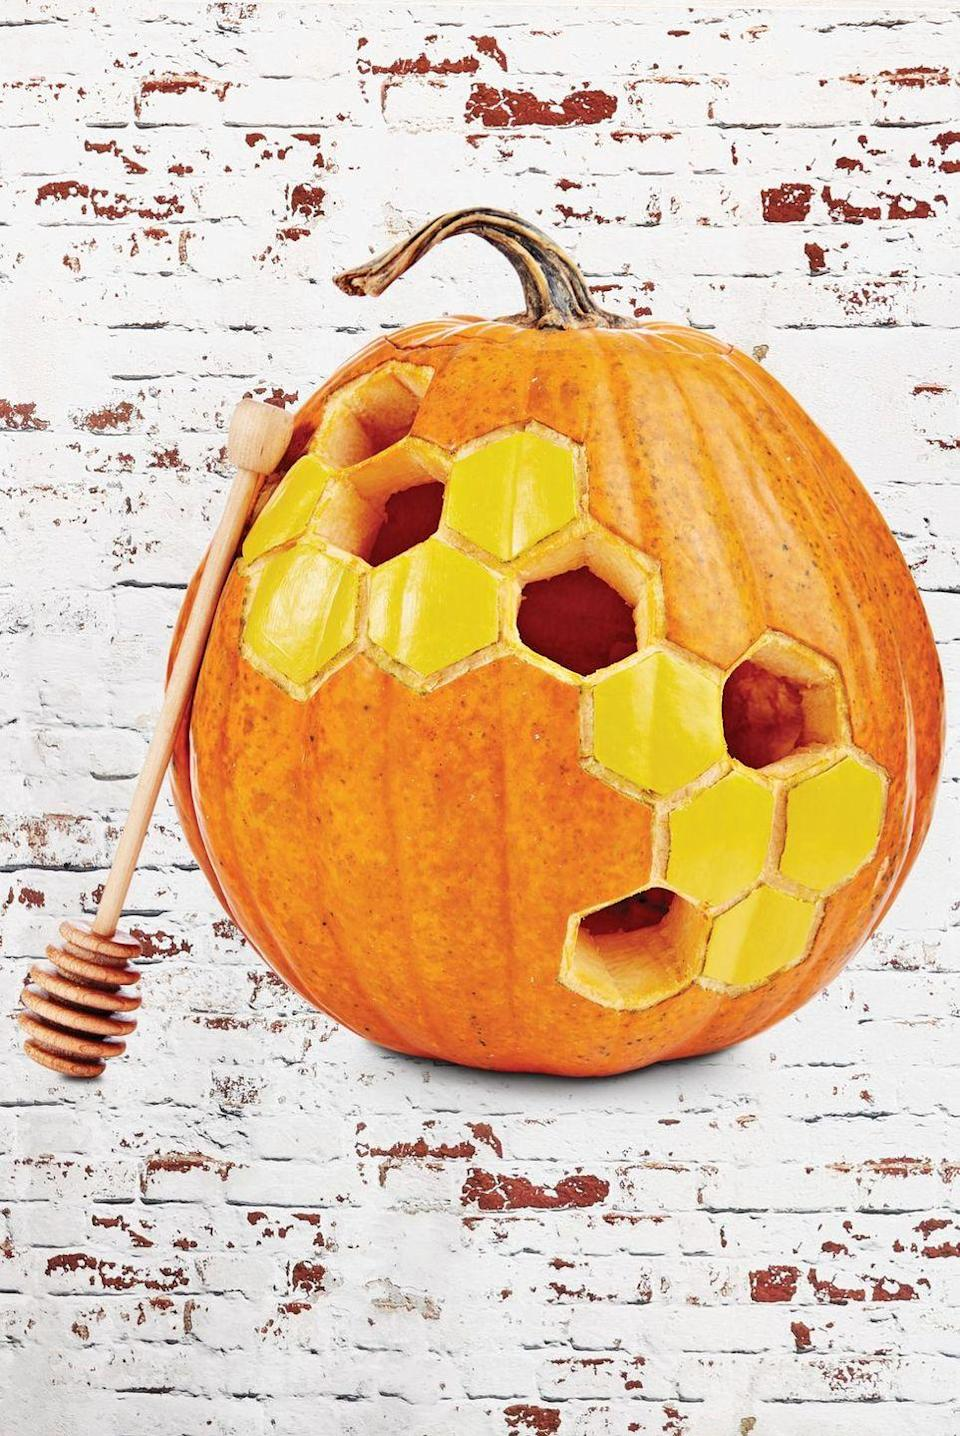 """<p>Go for a naturally sweet design by carving a large honeycomb pattern across the pumpkin's front. Leave a few honeycombs intact and paint them yellow to look like the real thing. </p><p><em><a href=""""https://www.countryliving.com/diy-crafts/g279/pumpkin-carving-ideas/"""" rel=""""nofollow noopener"""" target=""""_blank"""" data-ylk=""""slk:Get the tutorial at Country Living »"""" class=""""link rapid-noclick-resp"""">Get the tutorial at Country Living »</a></em></p>"""